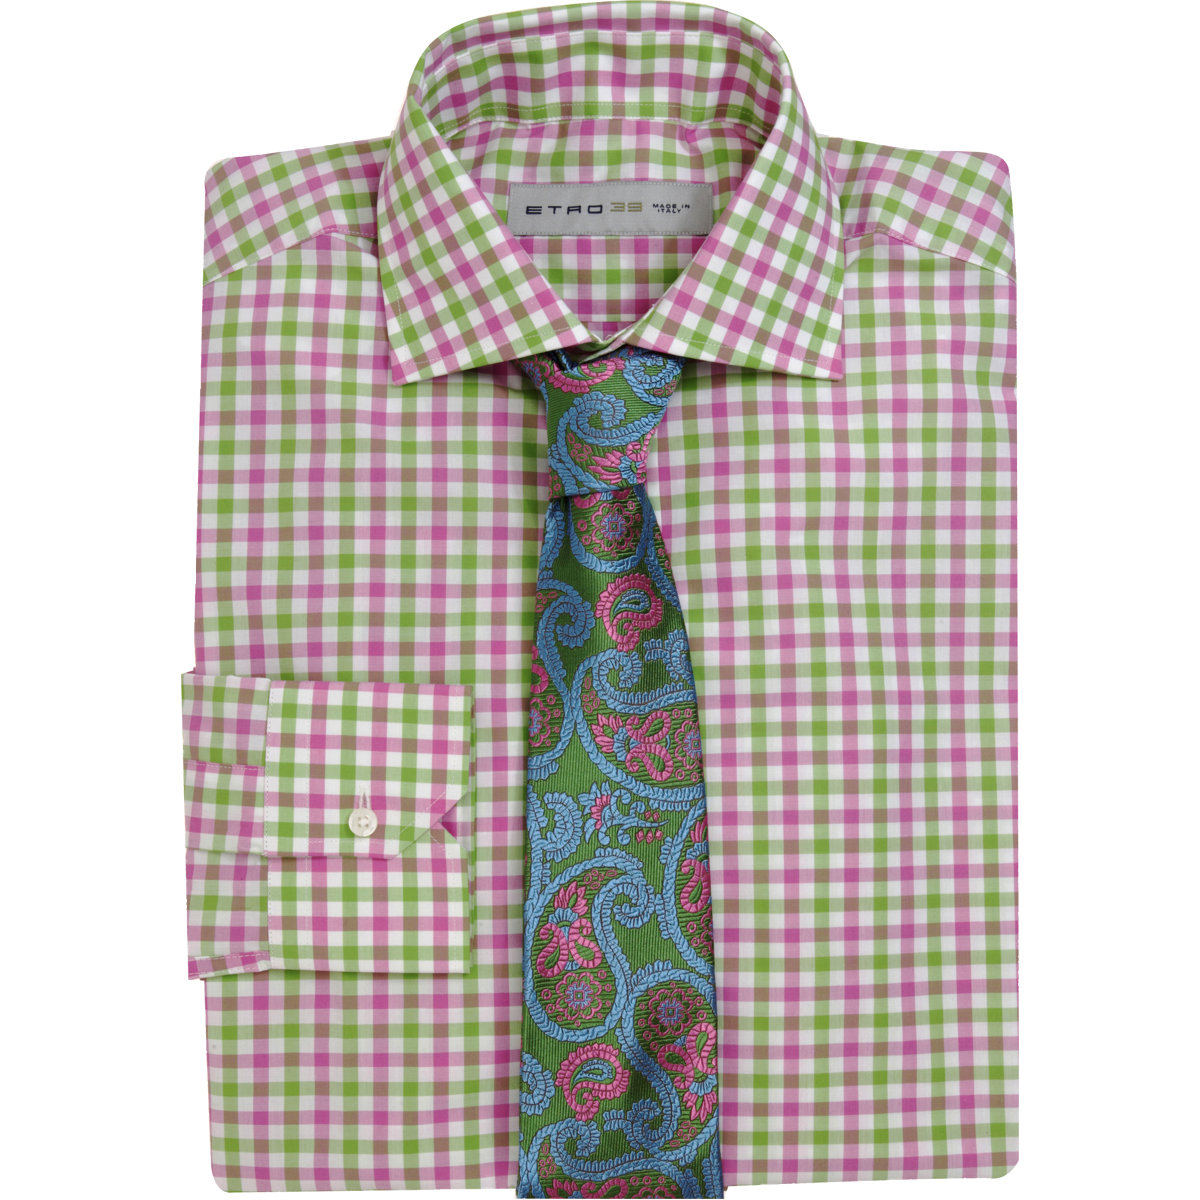 Etro gingham check dress shirt in pink for men lyst for Men s red gingham dress shirt